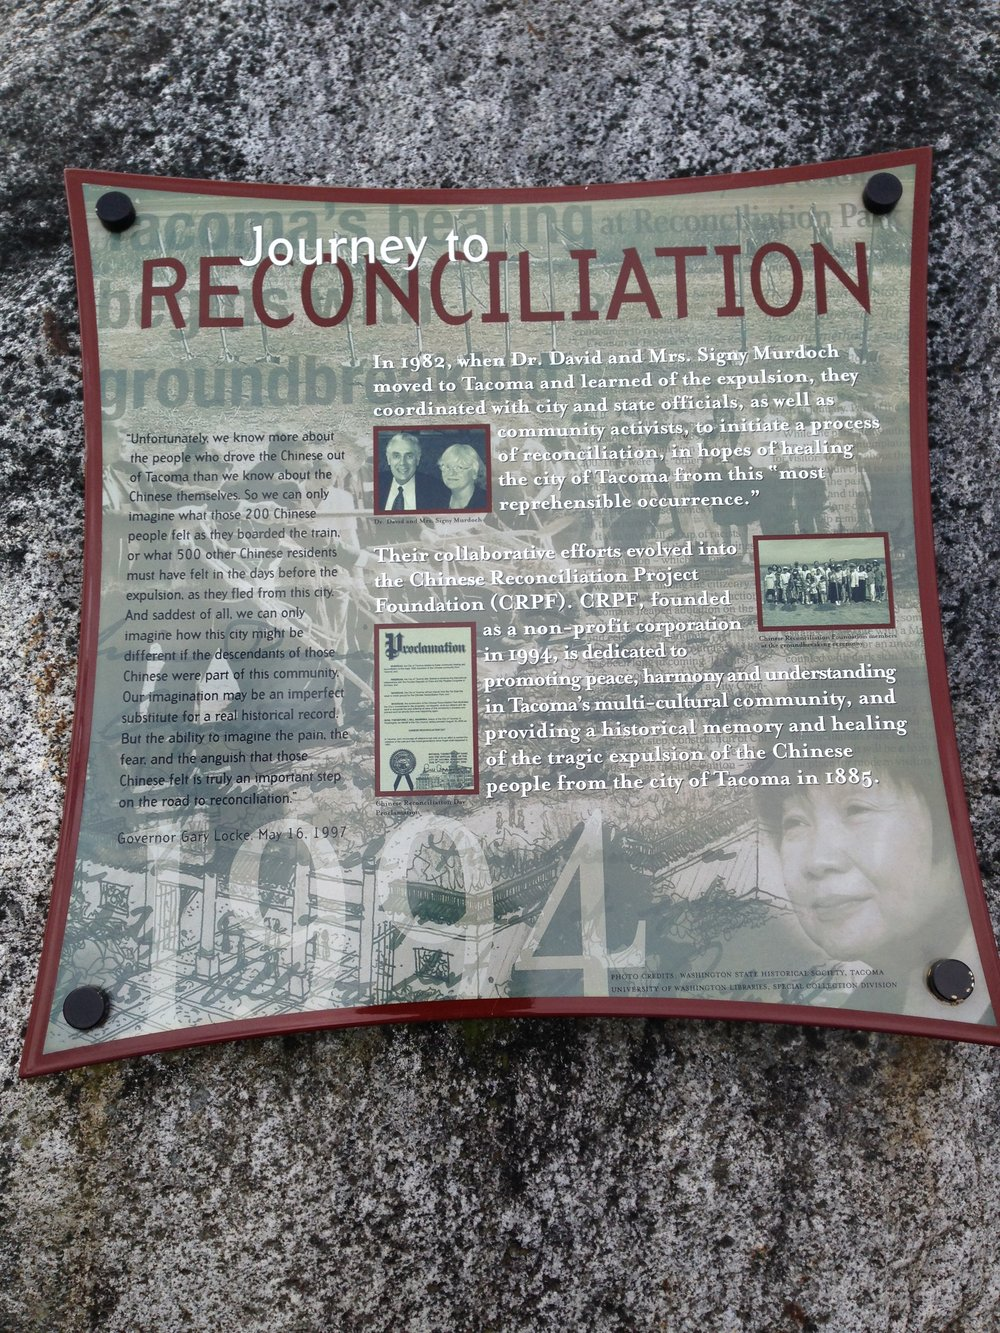 Plaque detailing the Reconciliation process and the construction of Reconciliation Park. Cesare Bigolin.